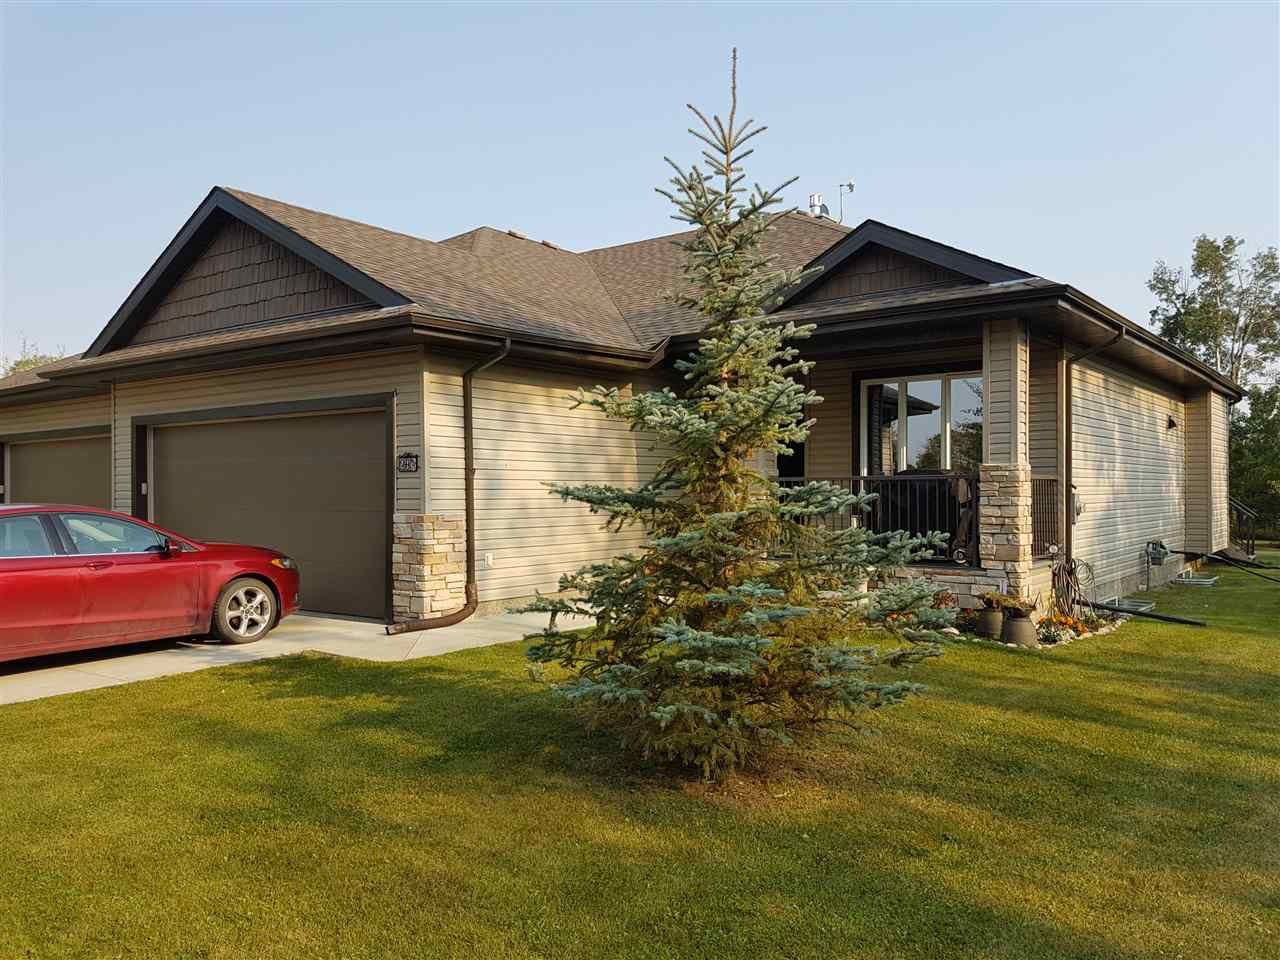 Main Photo: 23A 53521 RGE RD 272: Rural Parkland County House Half Duplex for sale : MLS®# E4143092